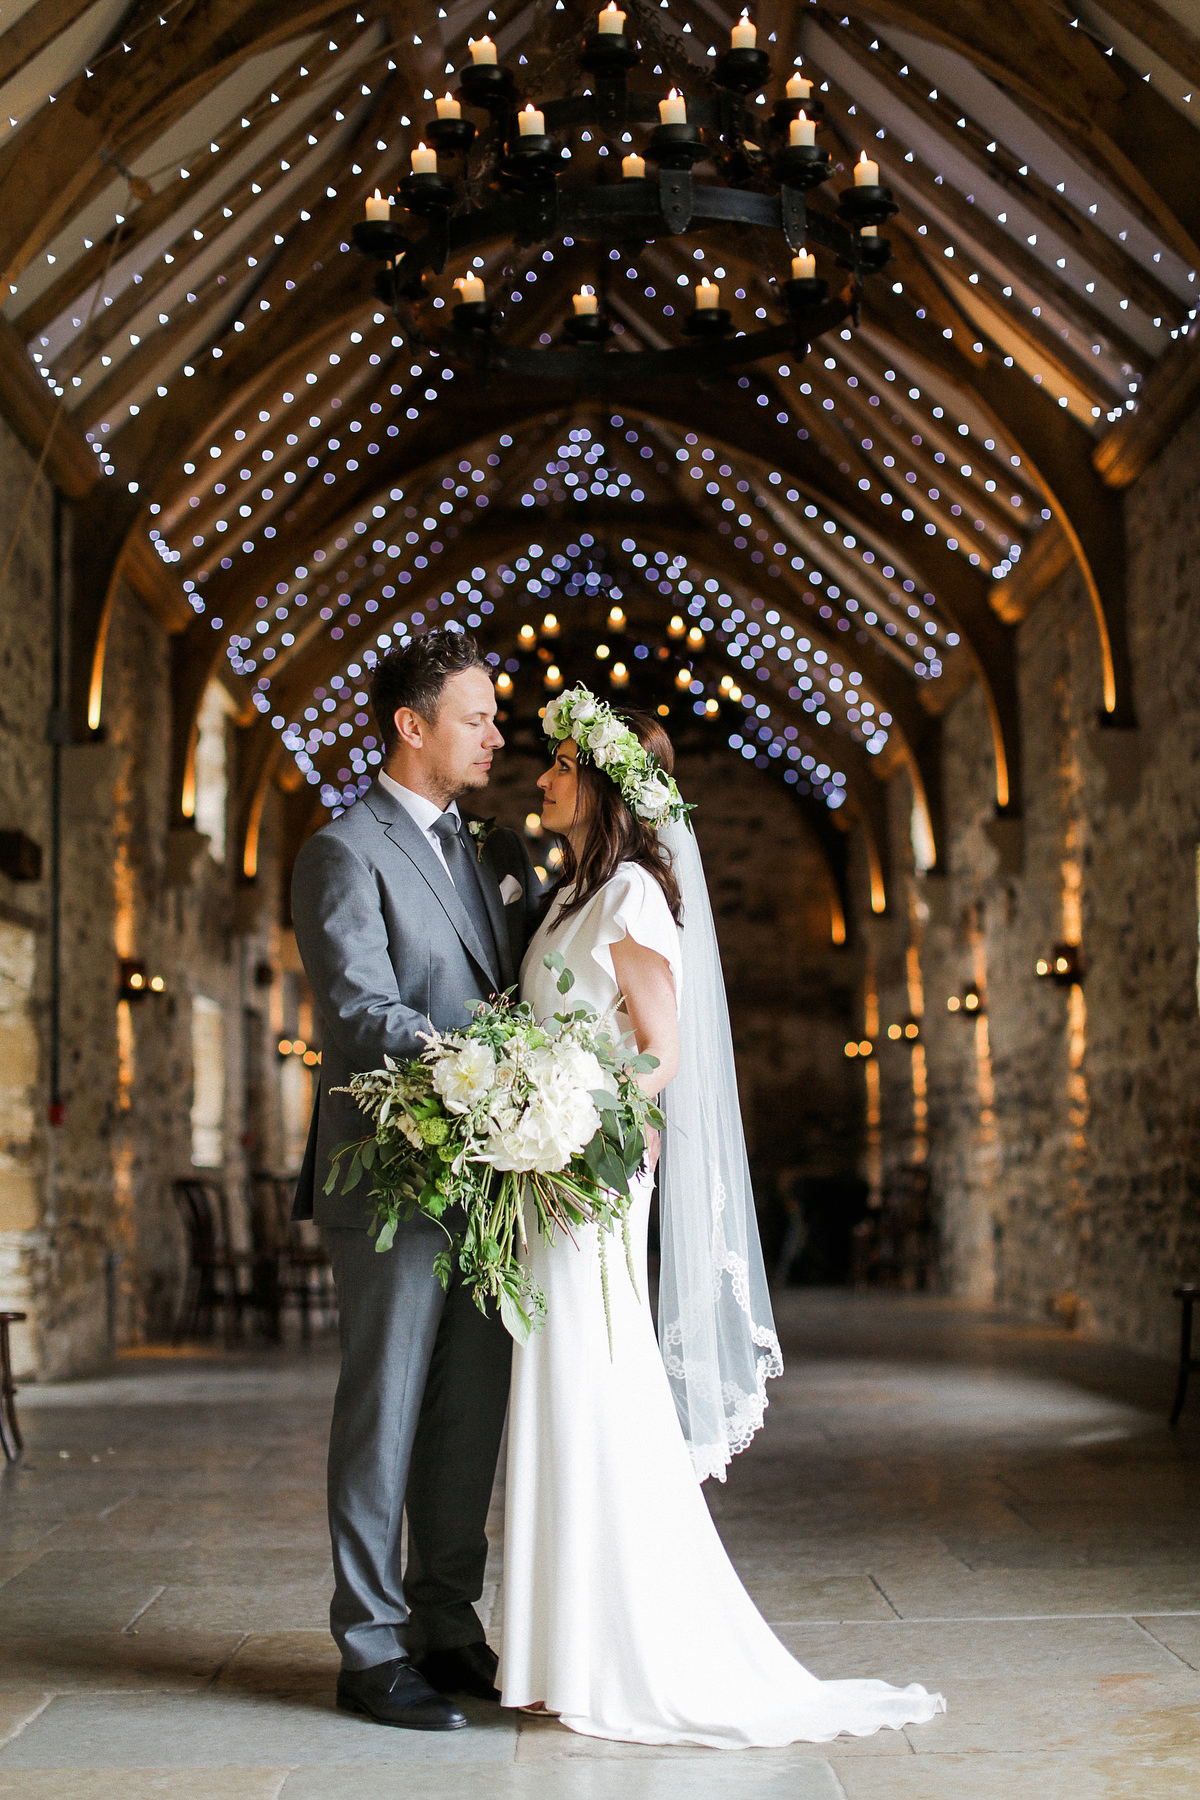 A David Fielden Dress and White Flower Bouquet for an Elegant Barn Wedding